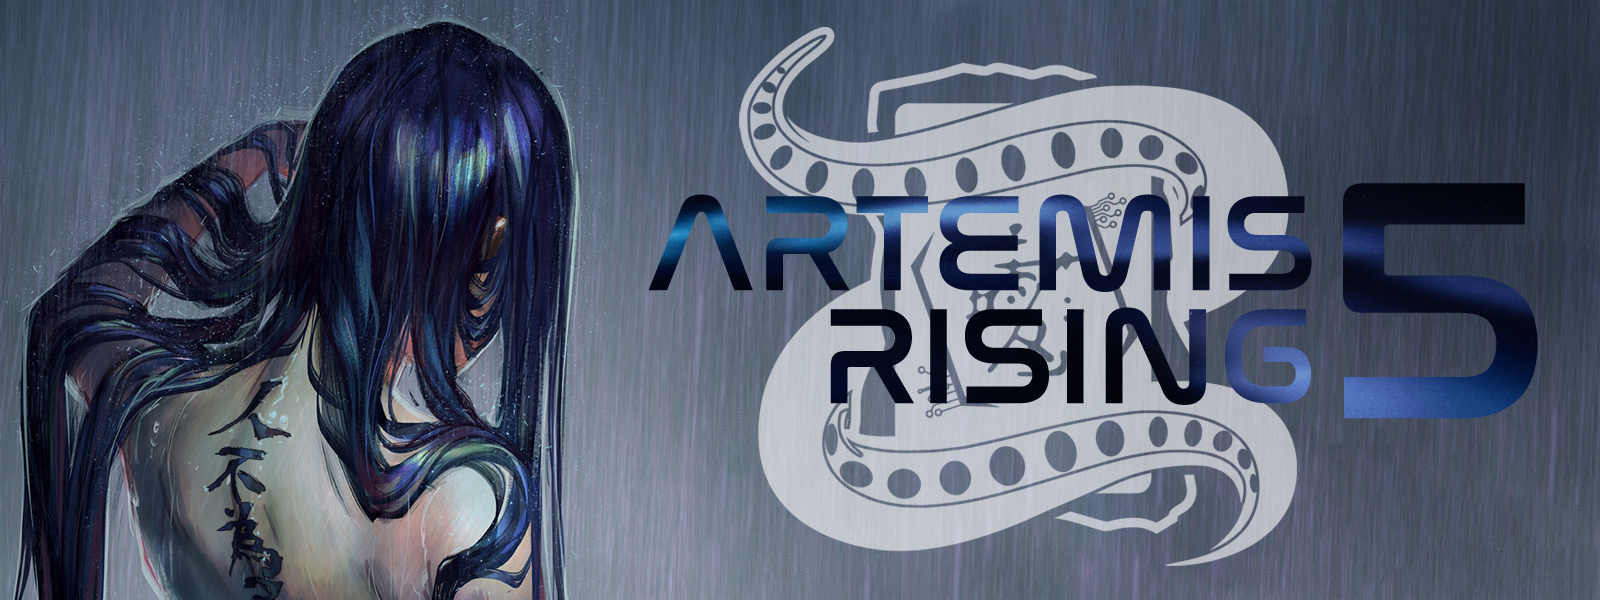 PseudoPod 641: ARTEMIS RISING 5: A Song for Wounded Mouths - PseudoPod